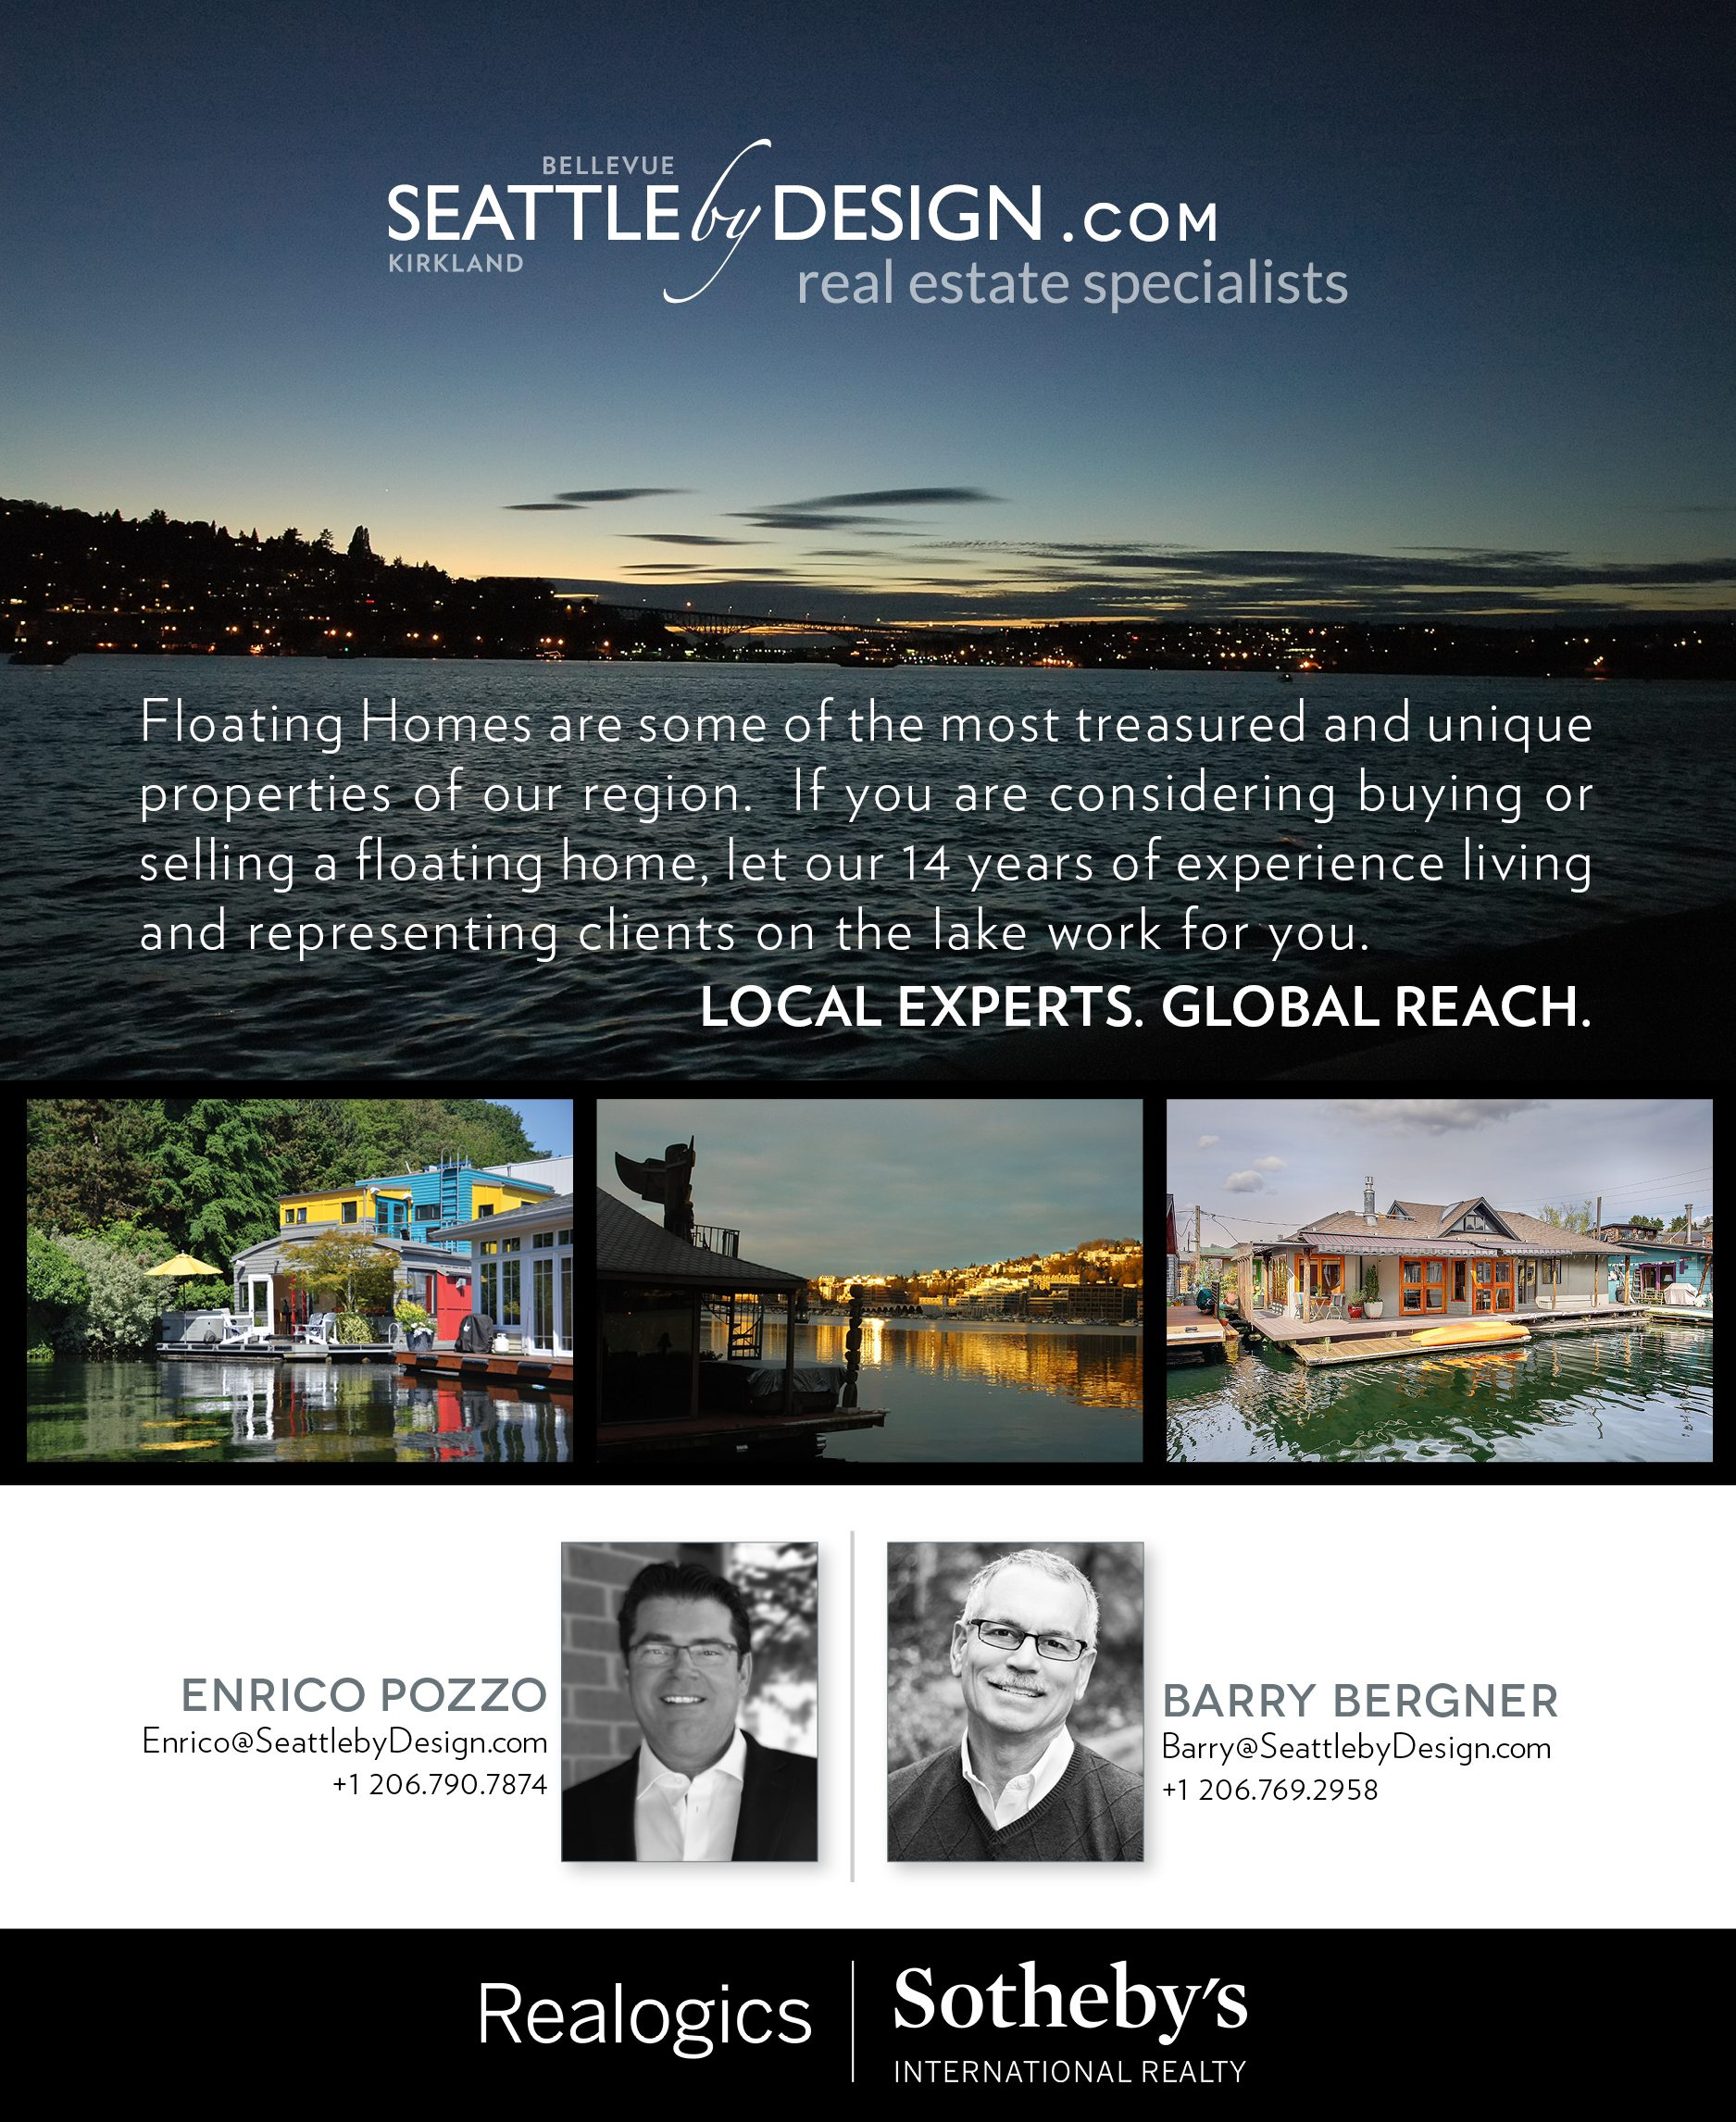 Online-Ad-for-Seattle-Floating-Homes-FINAL-SeattlebyDesign-Team-e1491785223335.jpg